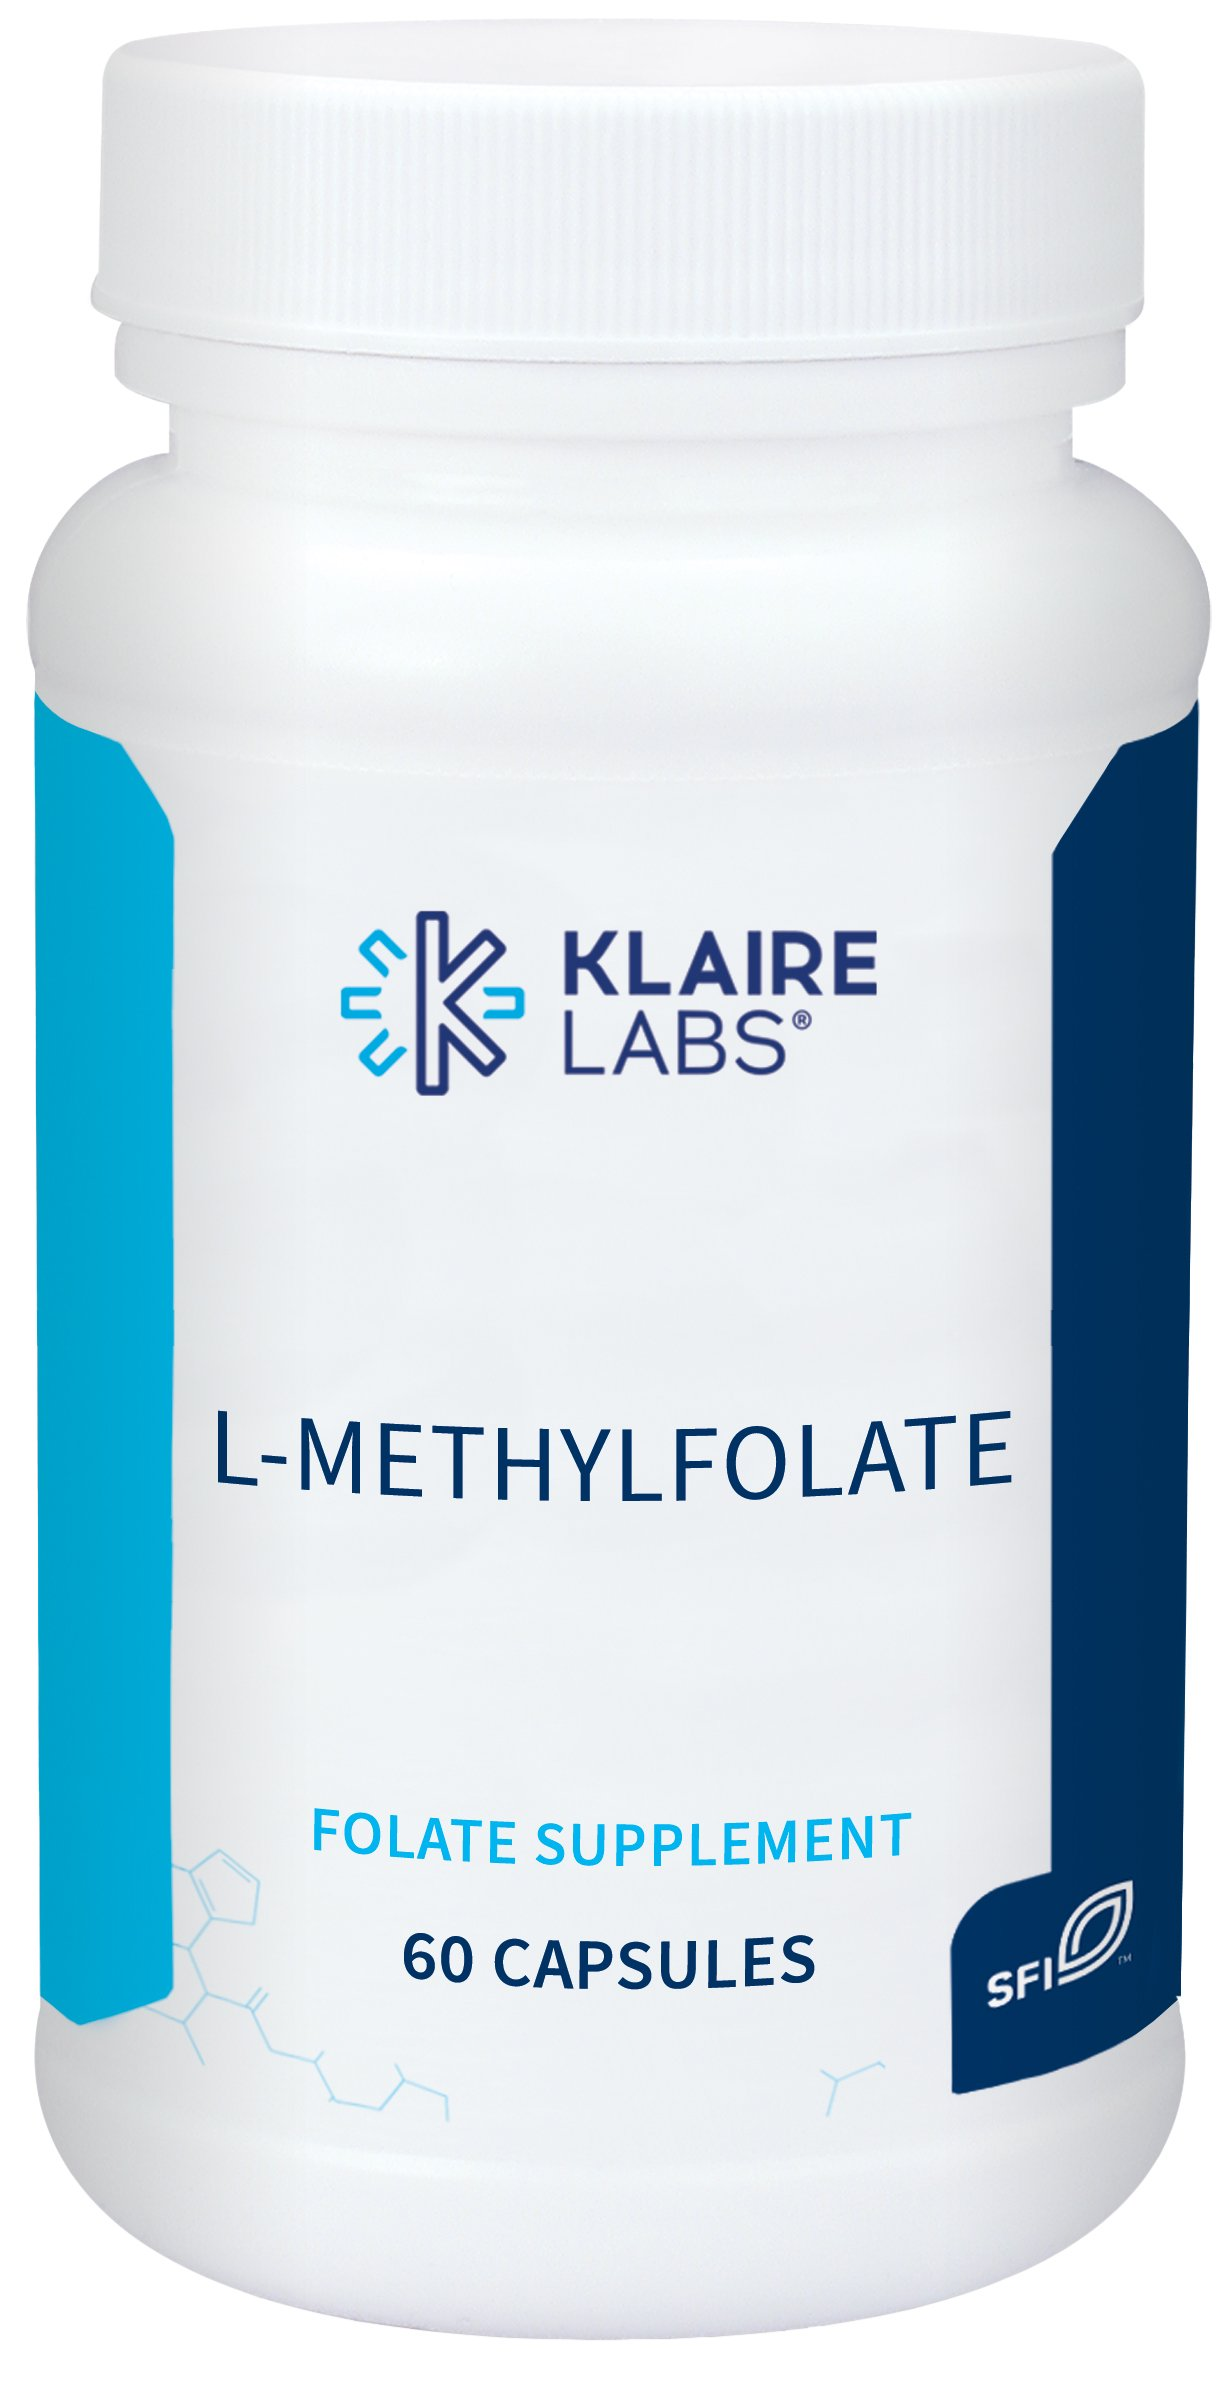 Klaire Labs L-Methylfolate - Highly Bioavailable, Non-GMO & Hypoallergenic 1000mcg (1 mg) Metafolin L-5-MTHF (60 Capsules)